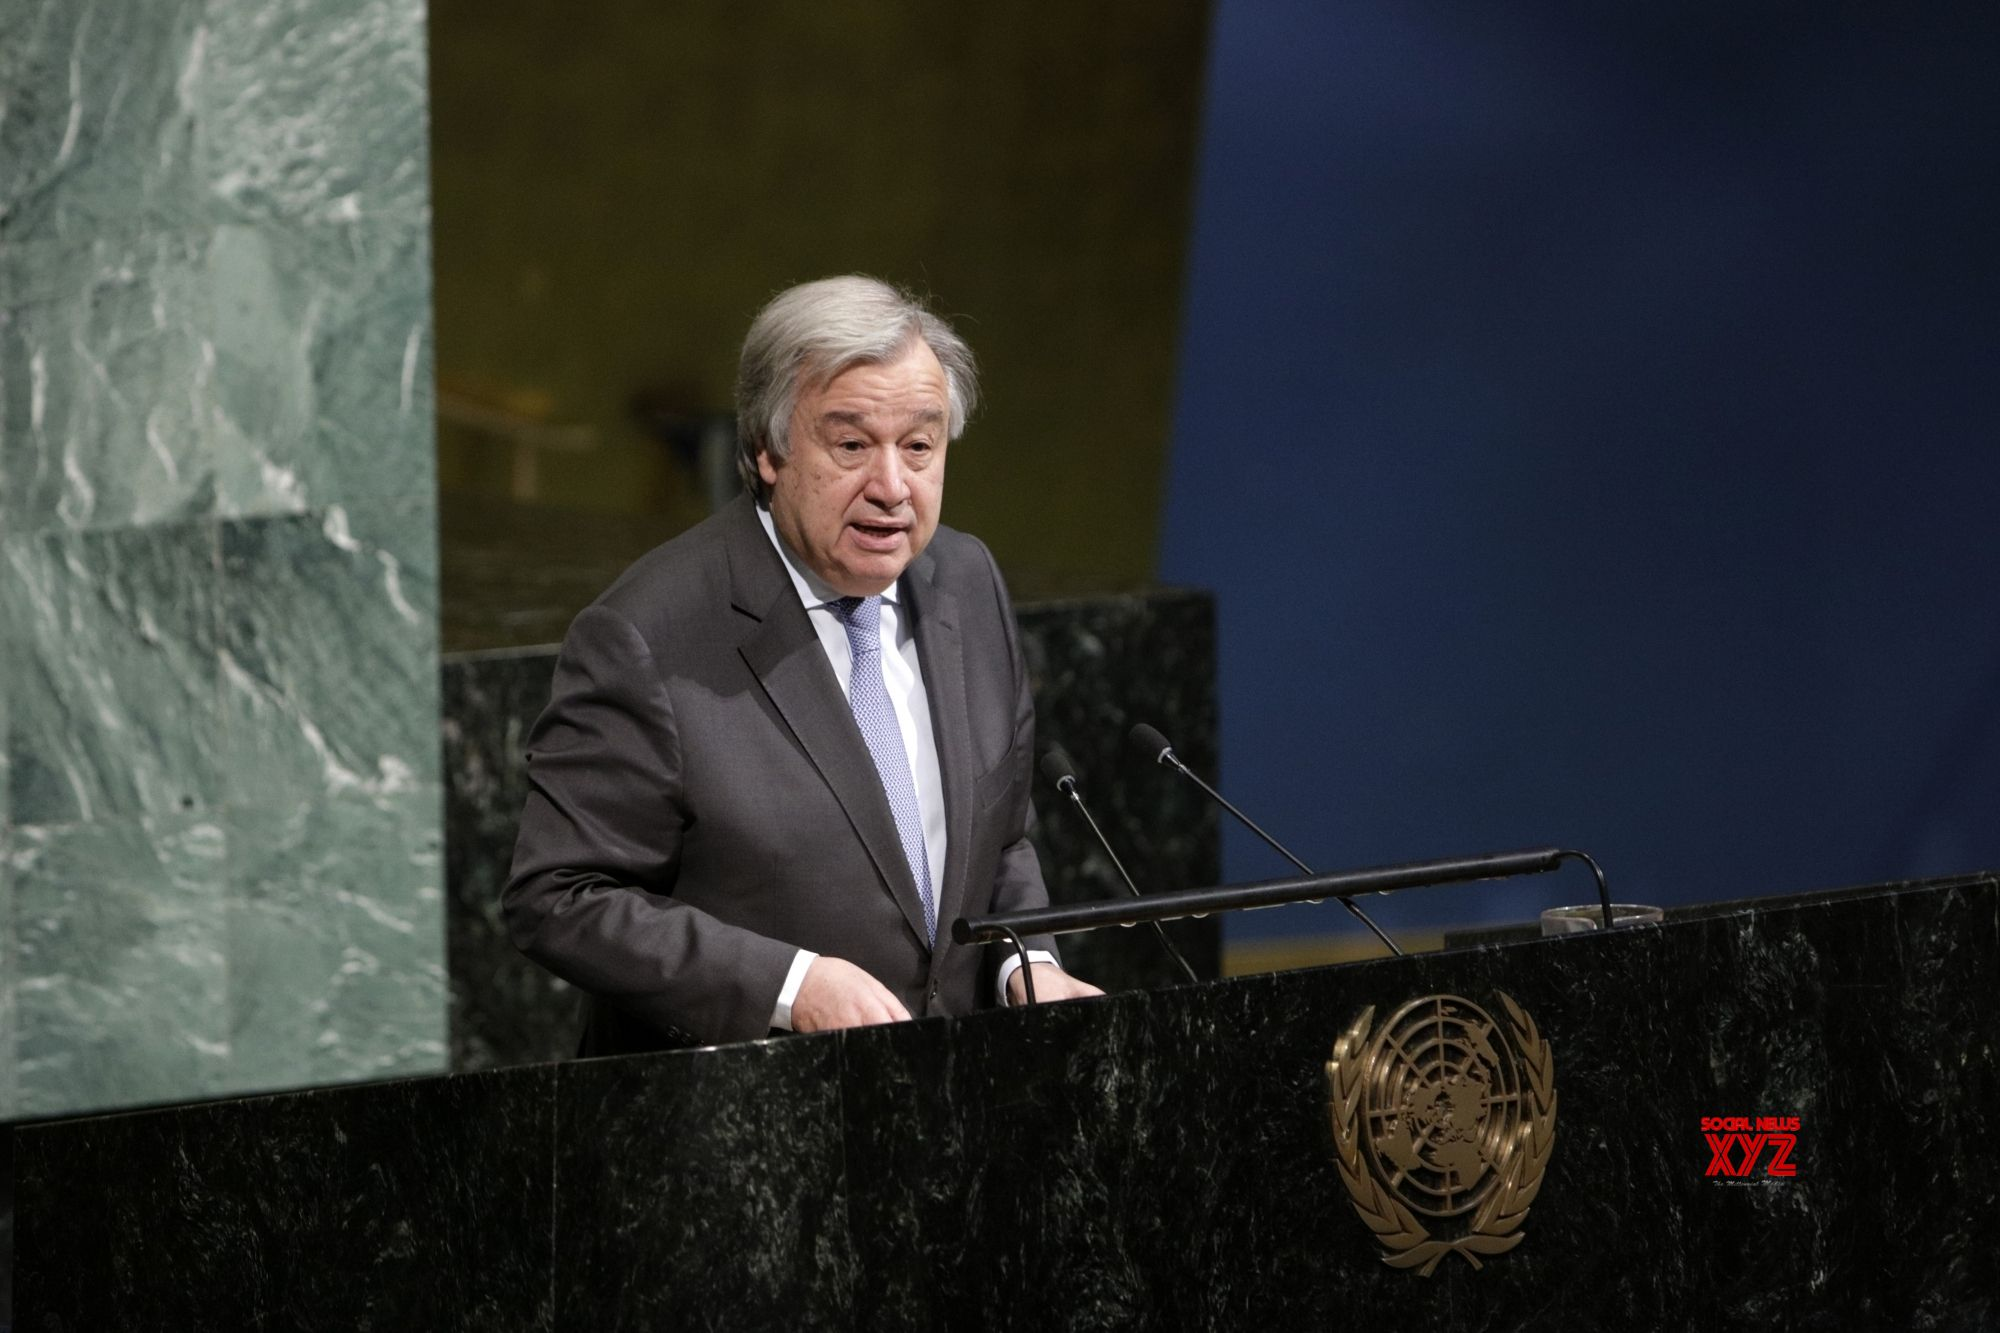 UN chief asks world to prevent genocide